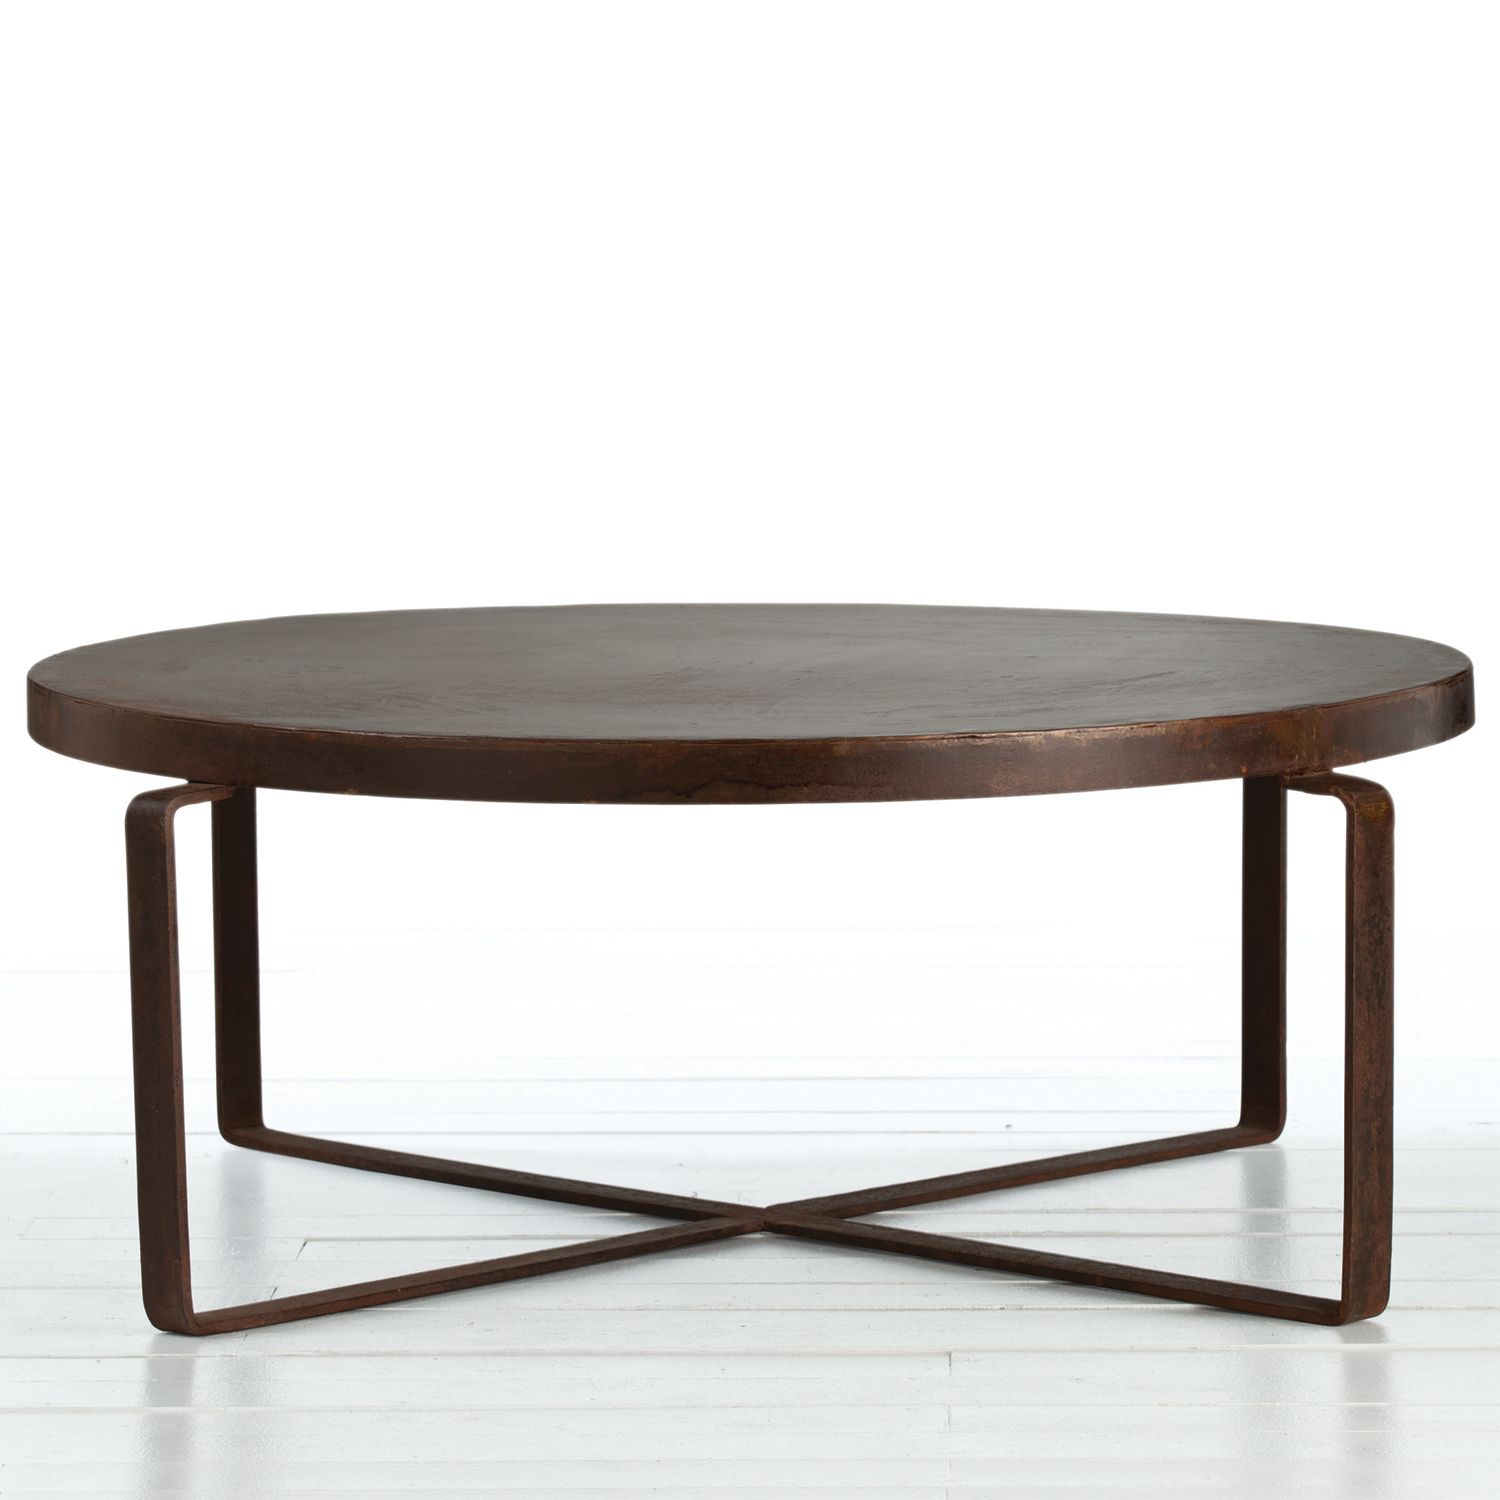 Round Industrial Coffee Table sofa Sets for Living Room Check